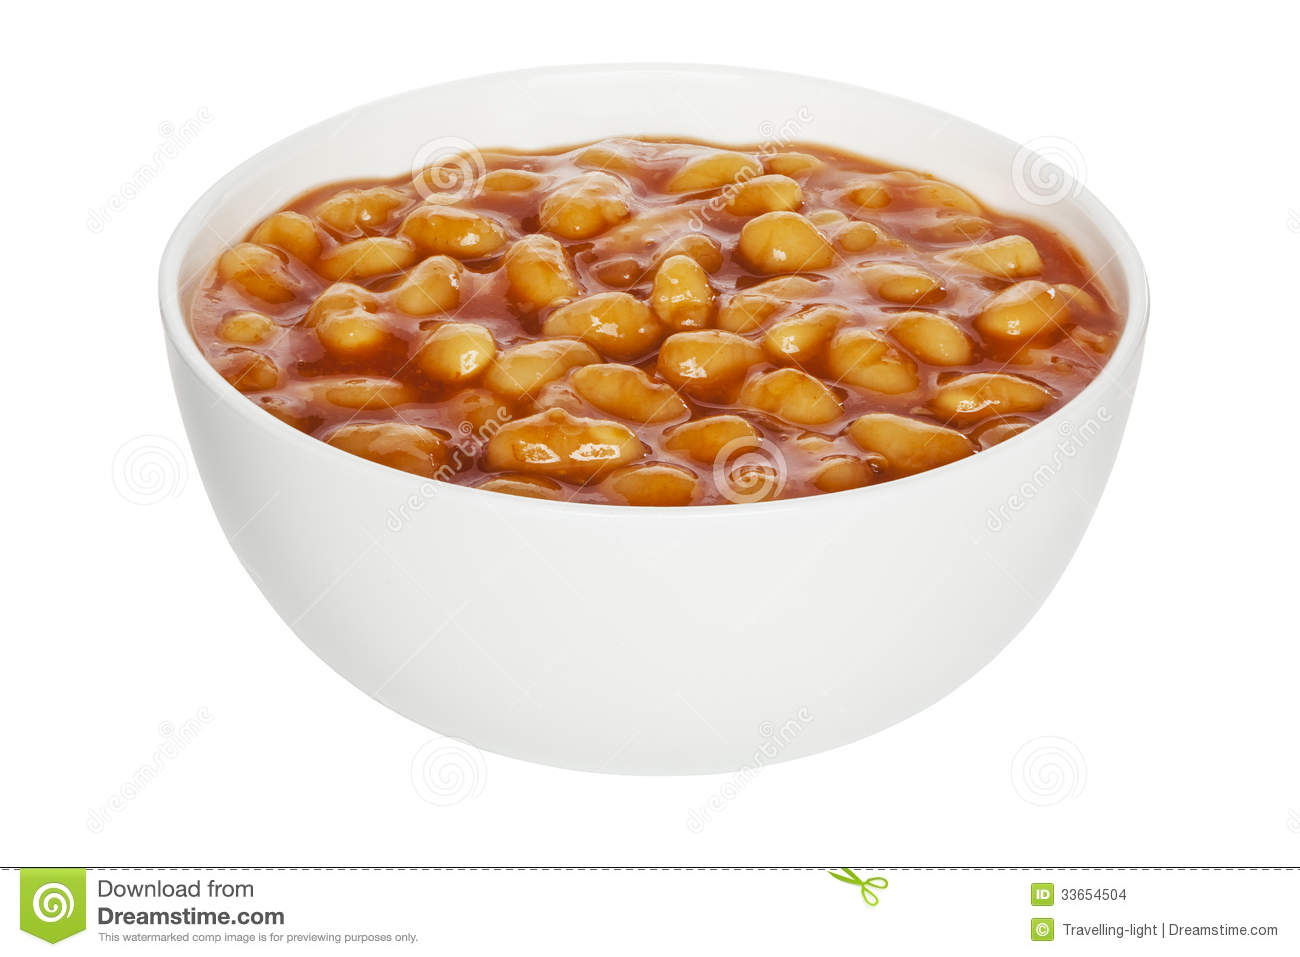 Baked Beans in a white china bowl, front to back focus, clipping path.